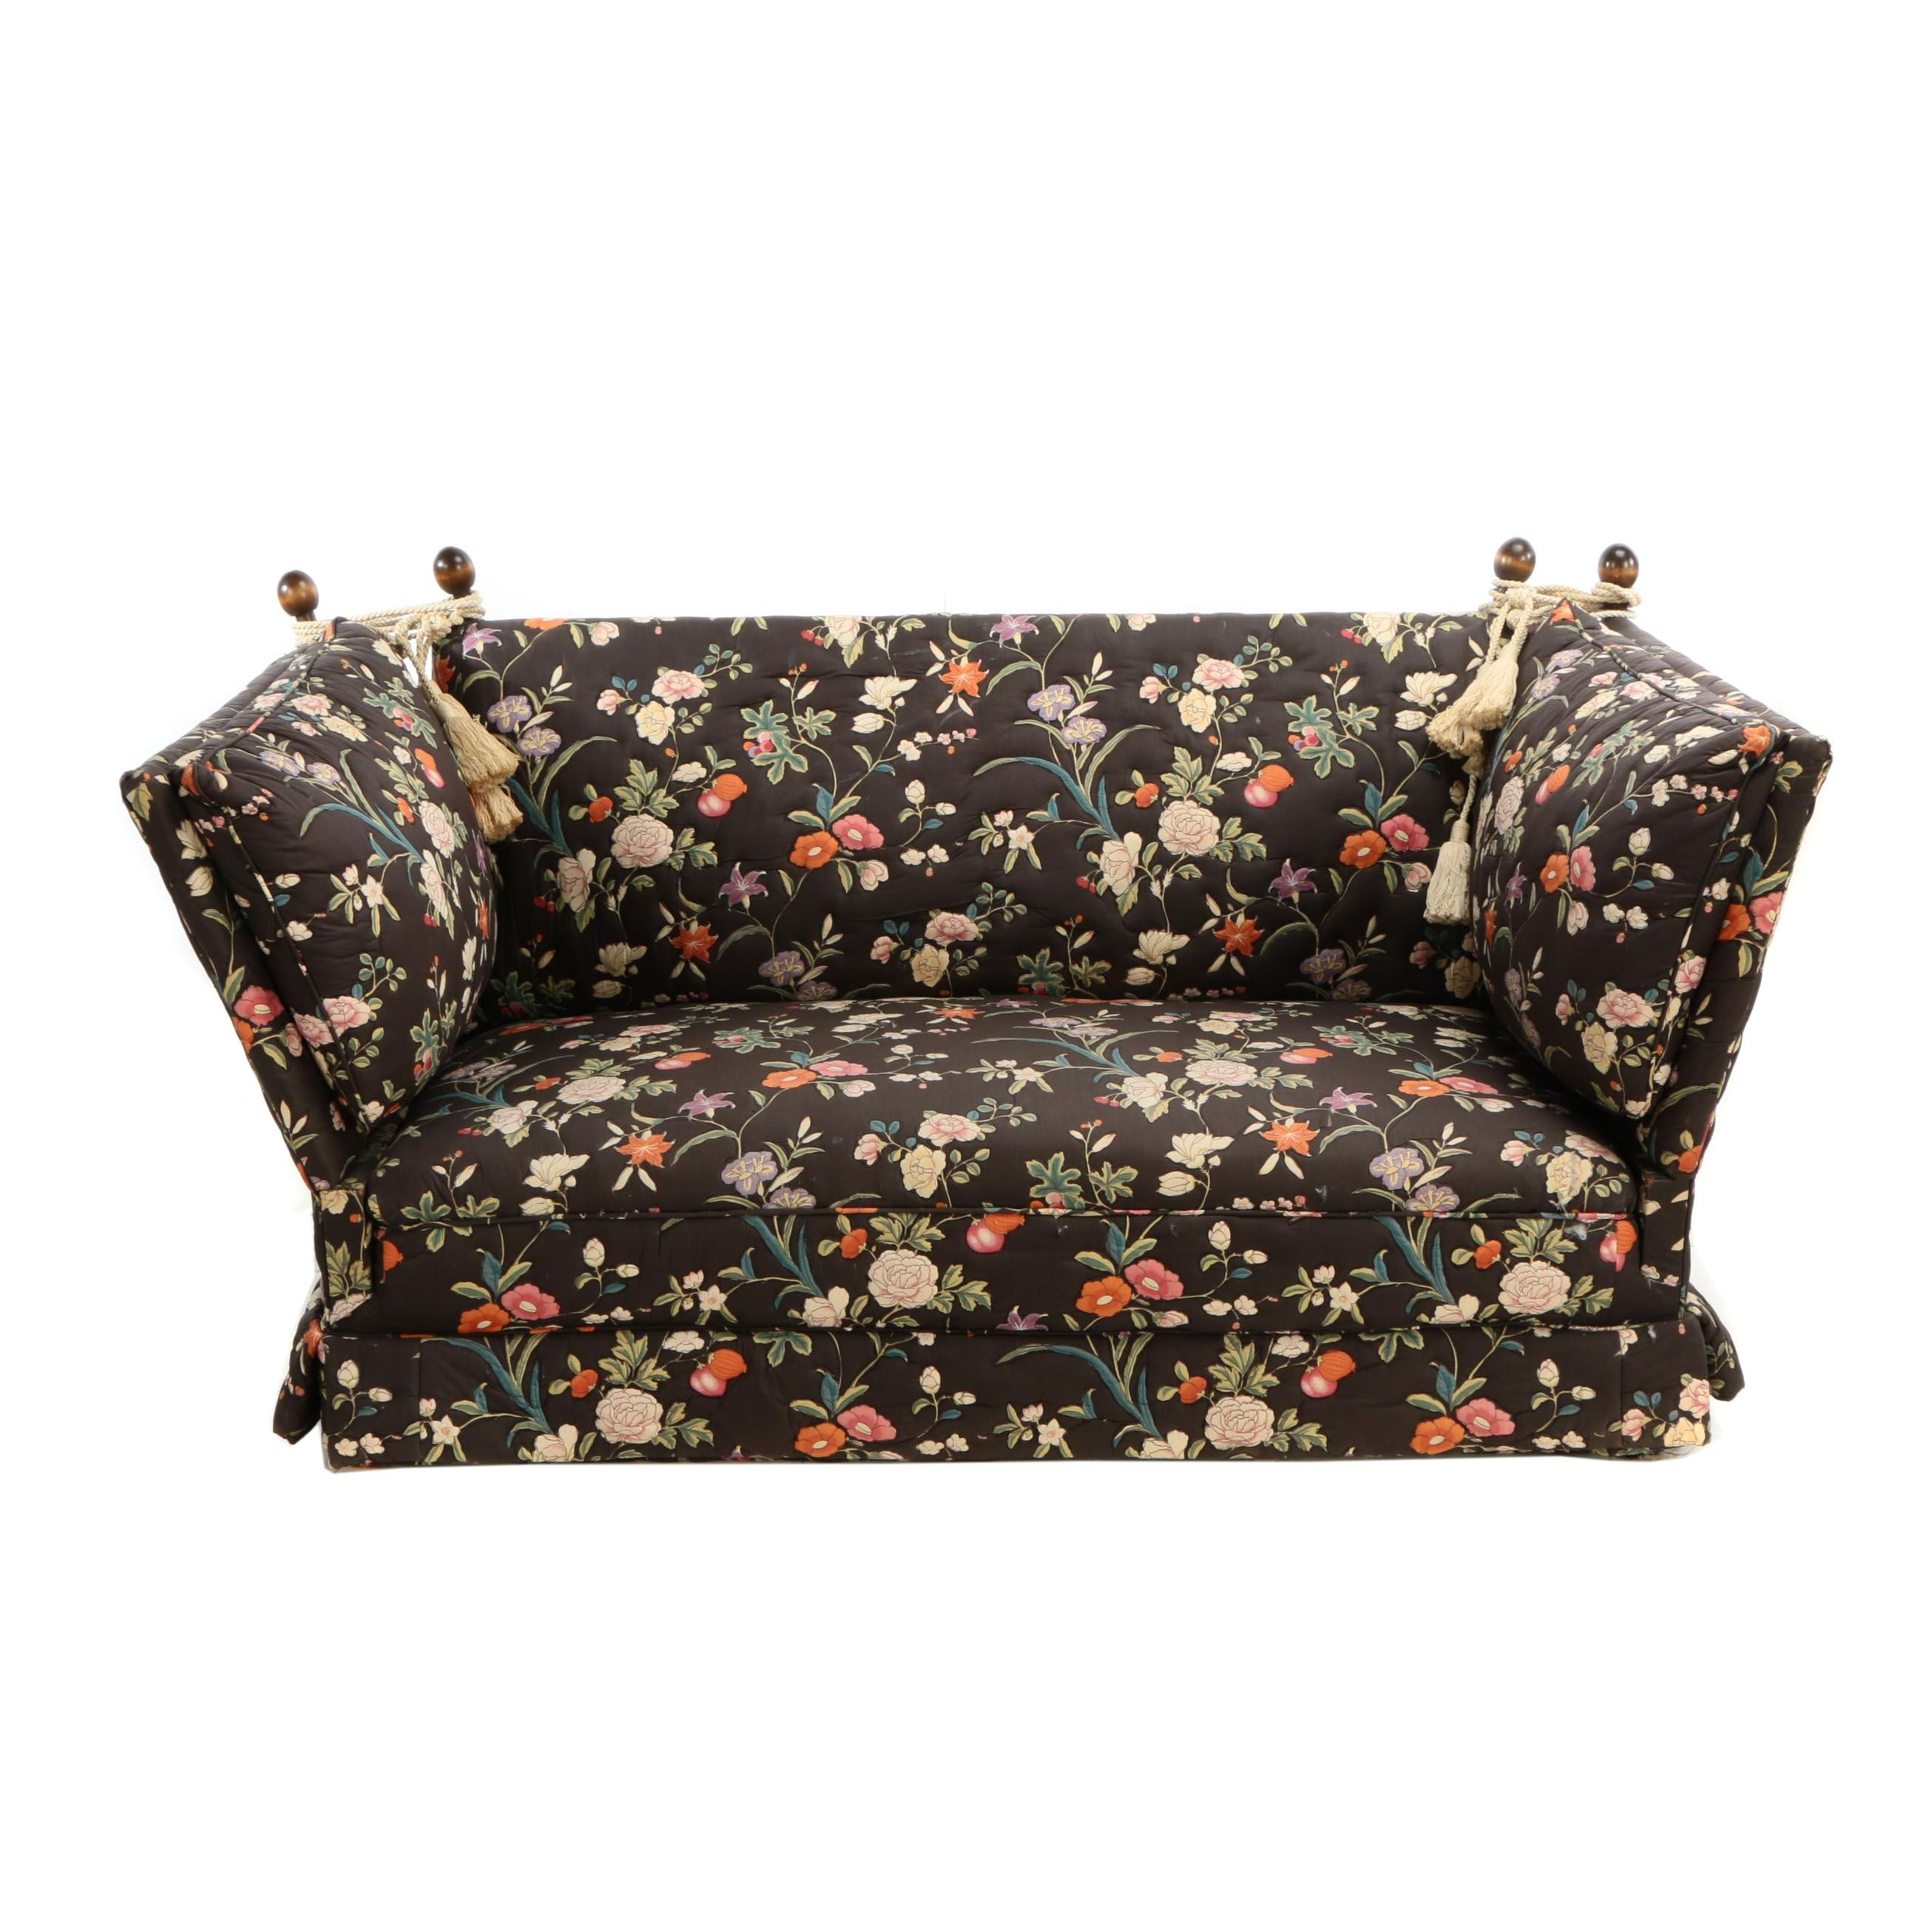 Knole Style Floral-Upholstered Loveseat, 20th Century